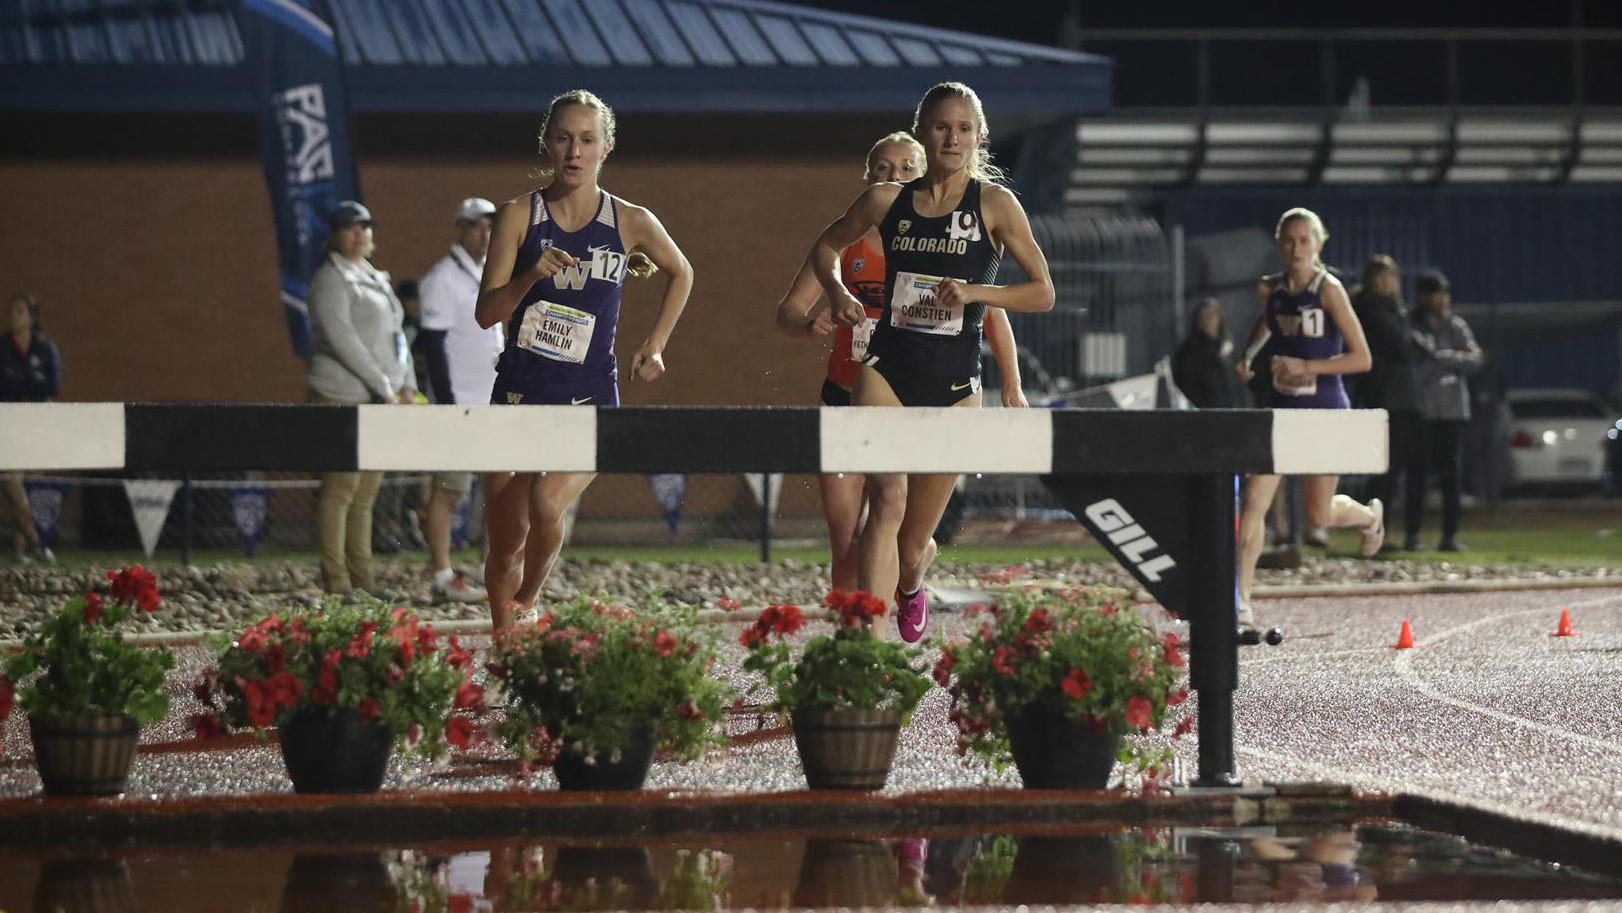 Air Force Invite Results - University of Colorado Athletics